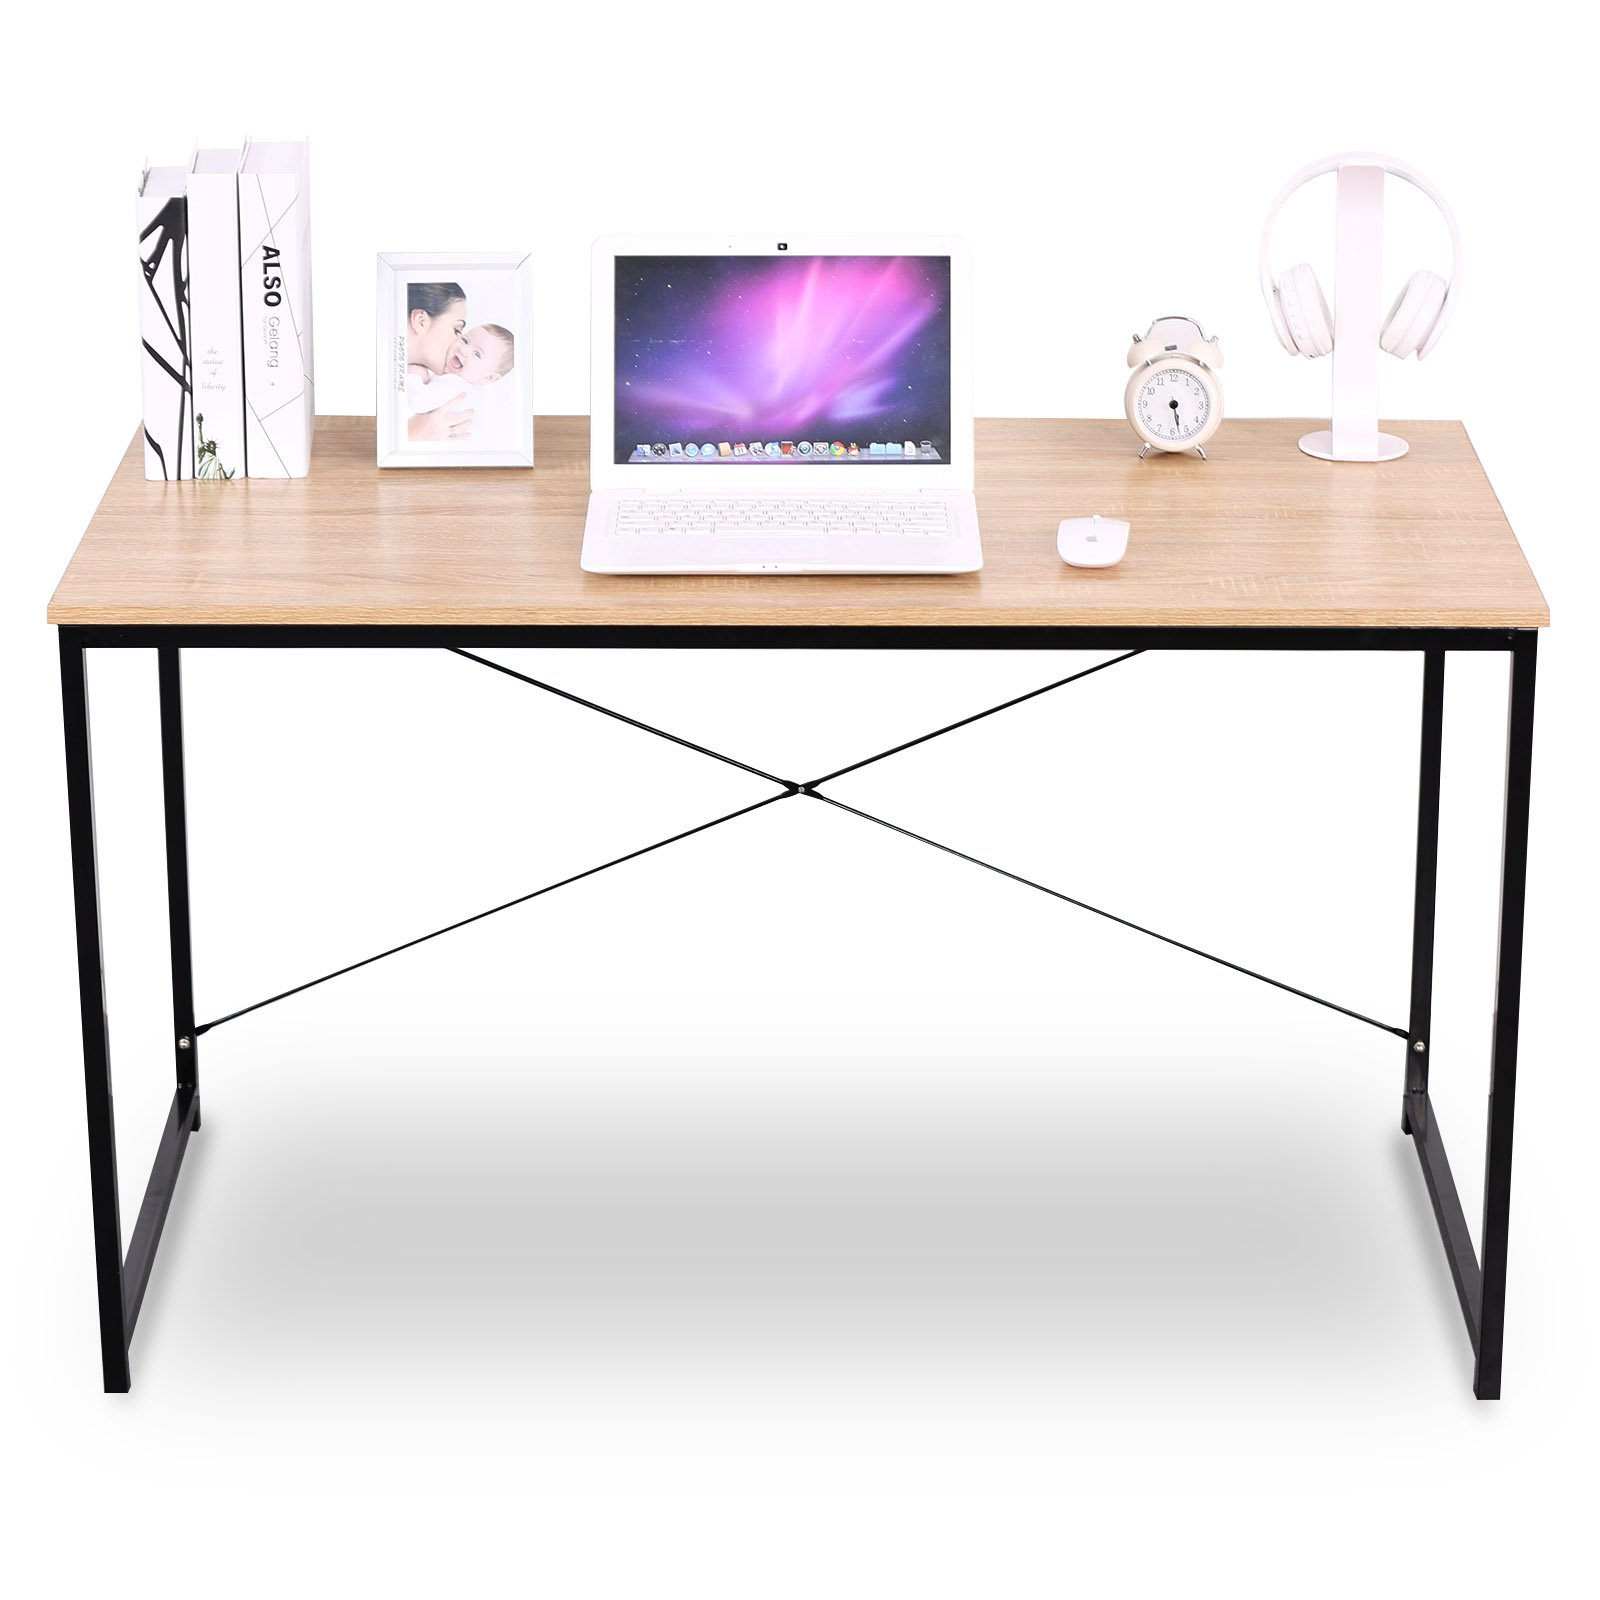 WOLTU Simple Design Black Wood Computer Desk Compact Laptop Table Personal Home Use